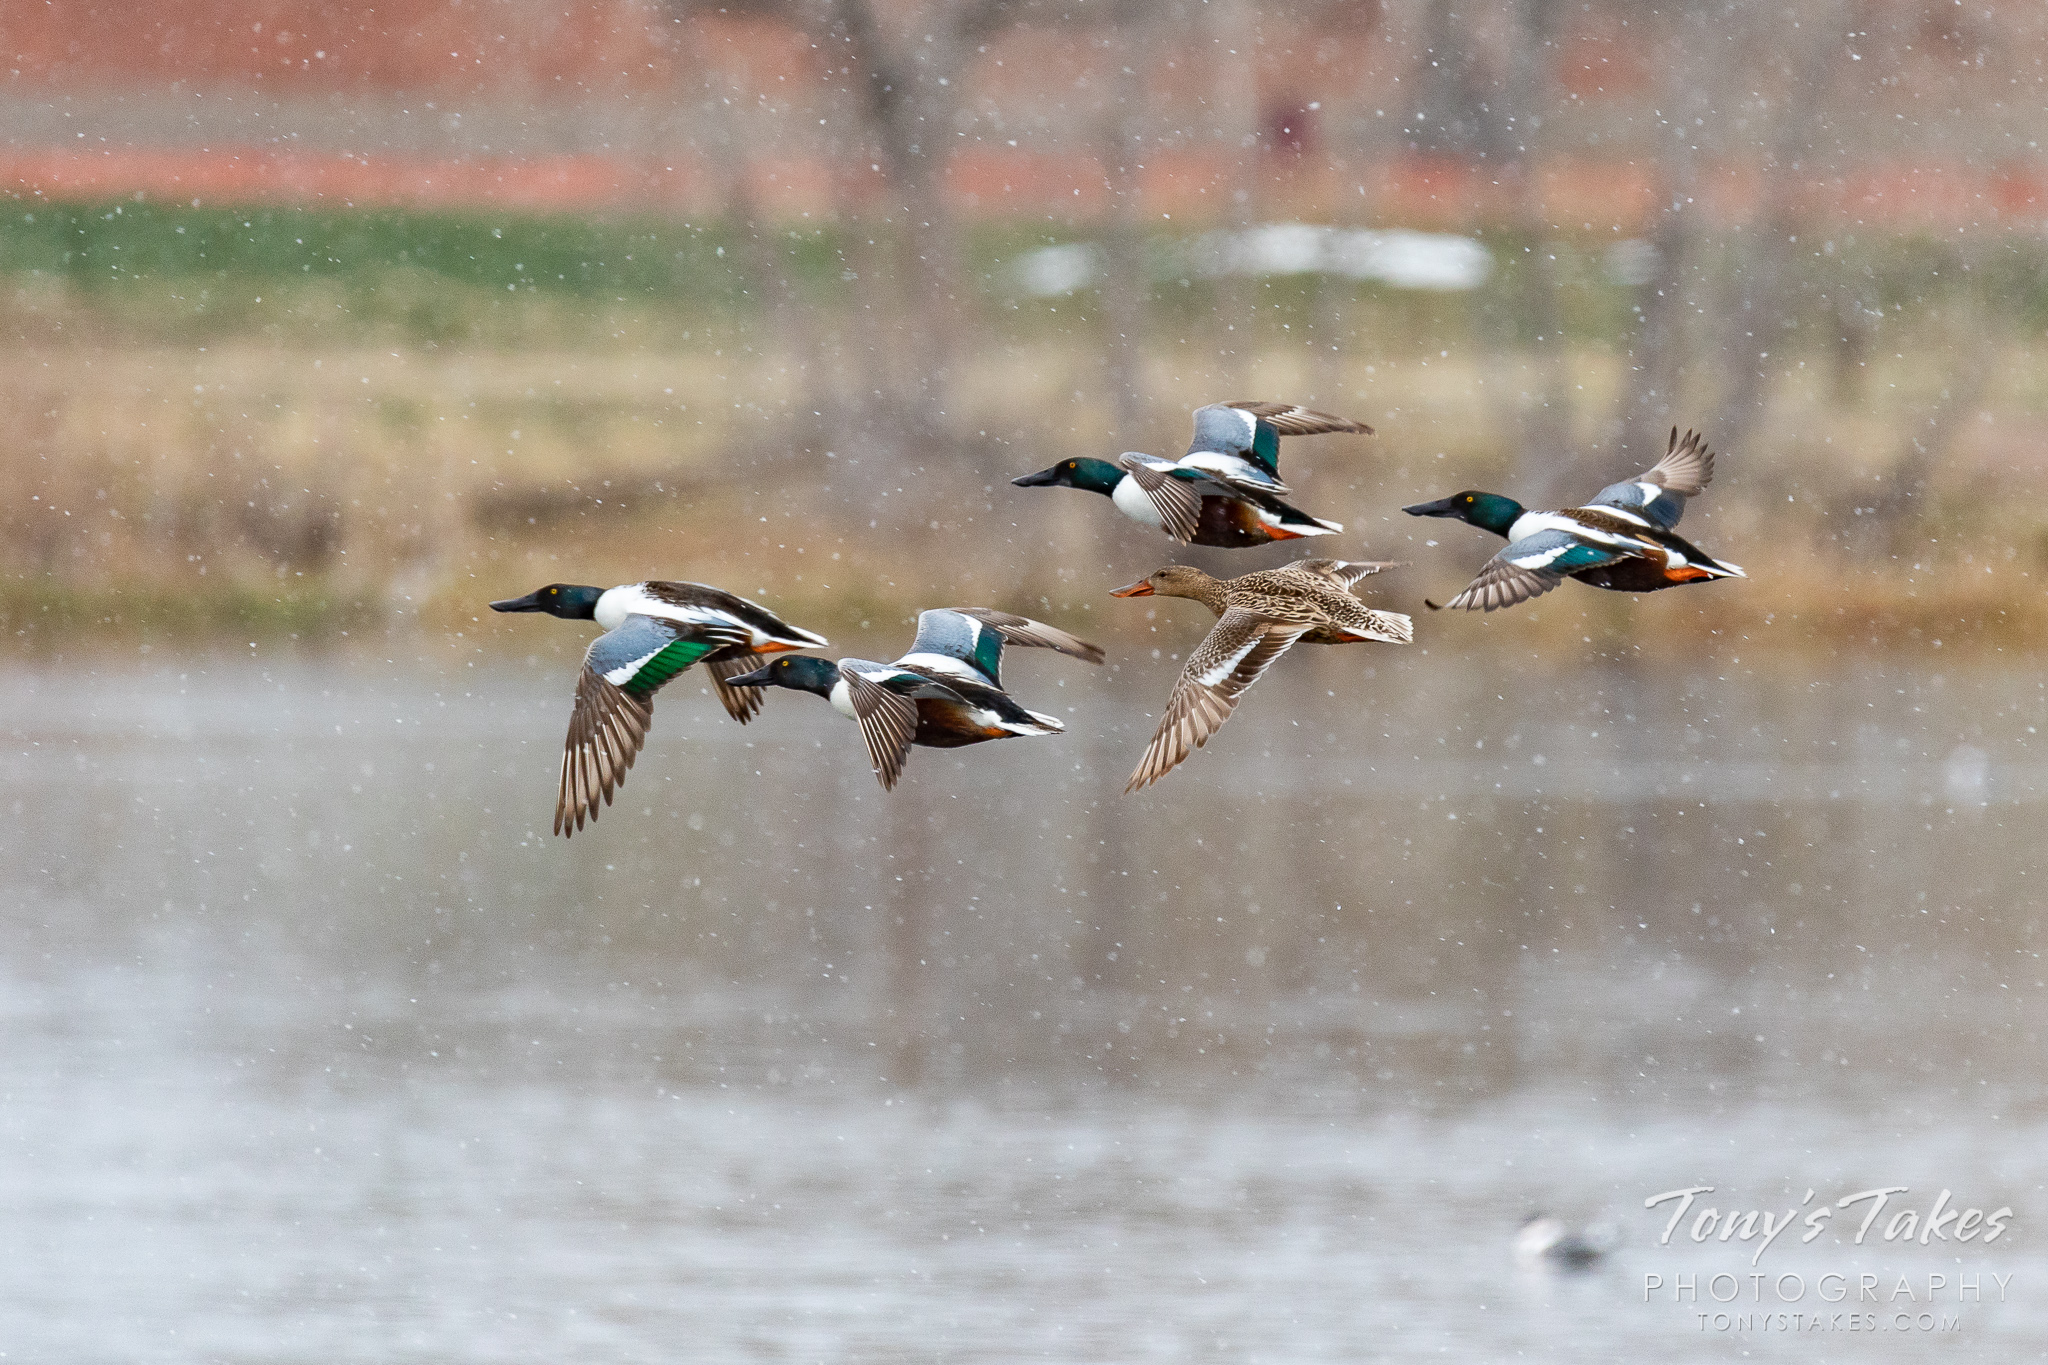 Northern shoveler ducks take flight in the snow in Adams County, Colorado. (© Tony's Takes)